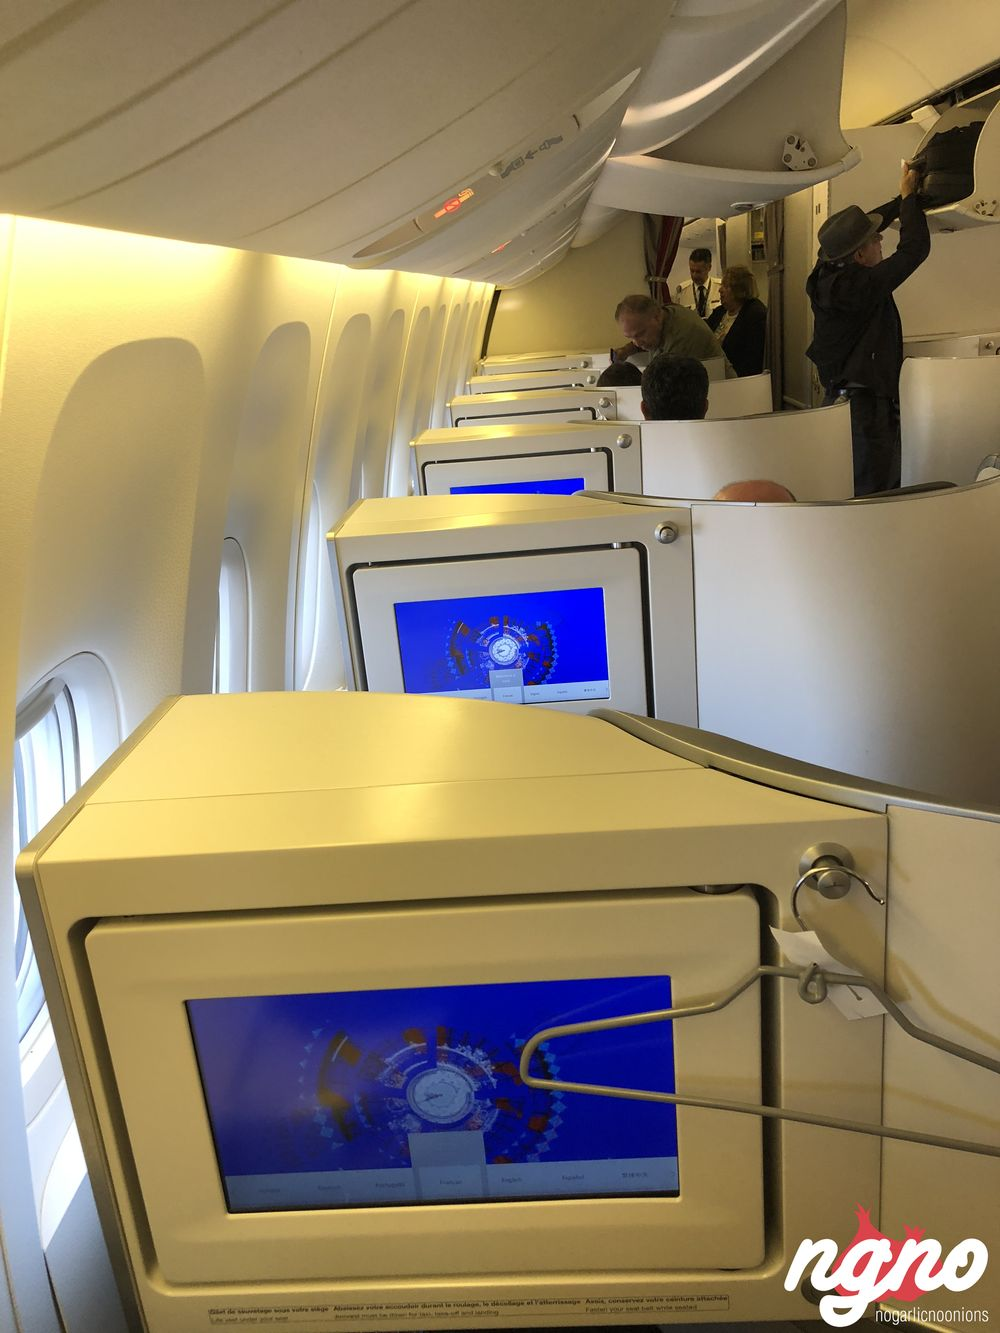 airfrance-beirut-paris-business-class-boeing-777-nogarlicnoonions382017-11-13-07-46-22